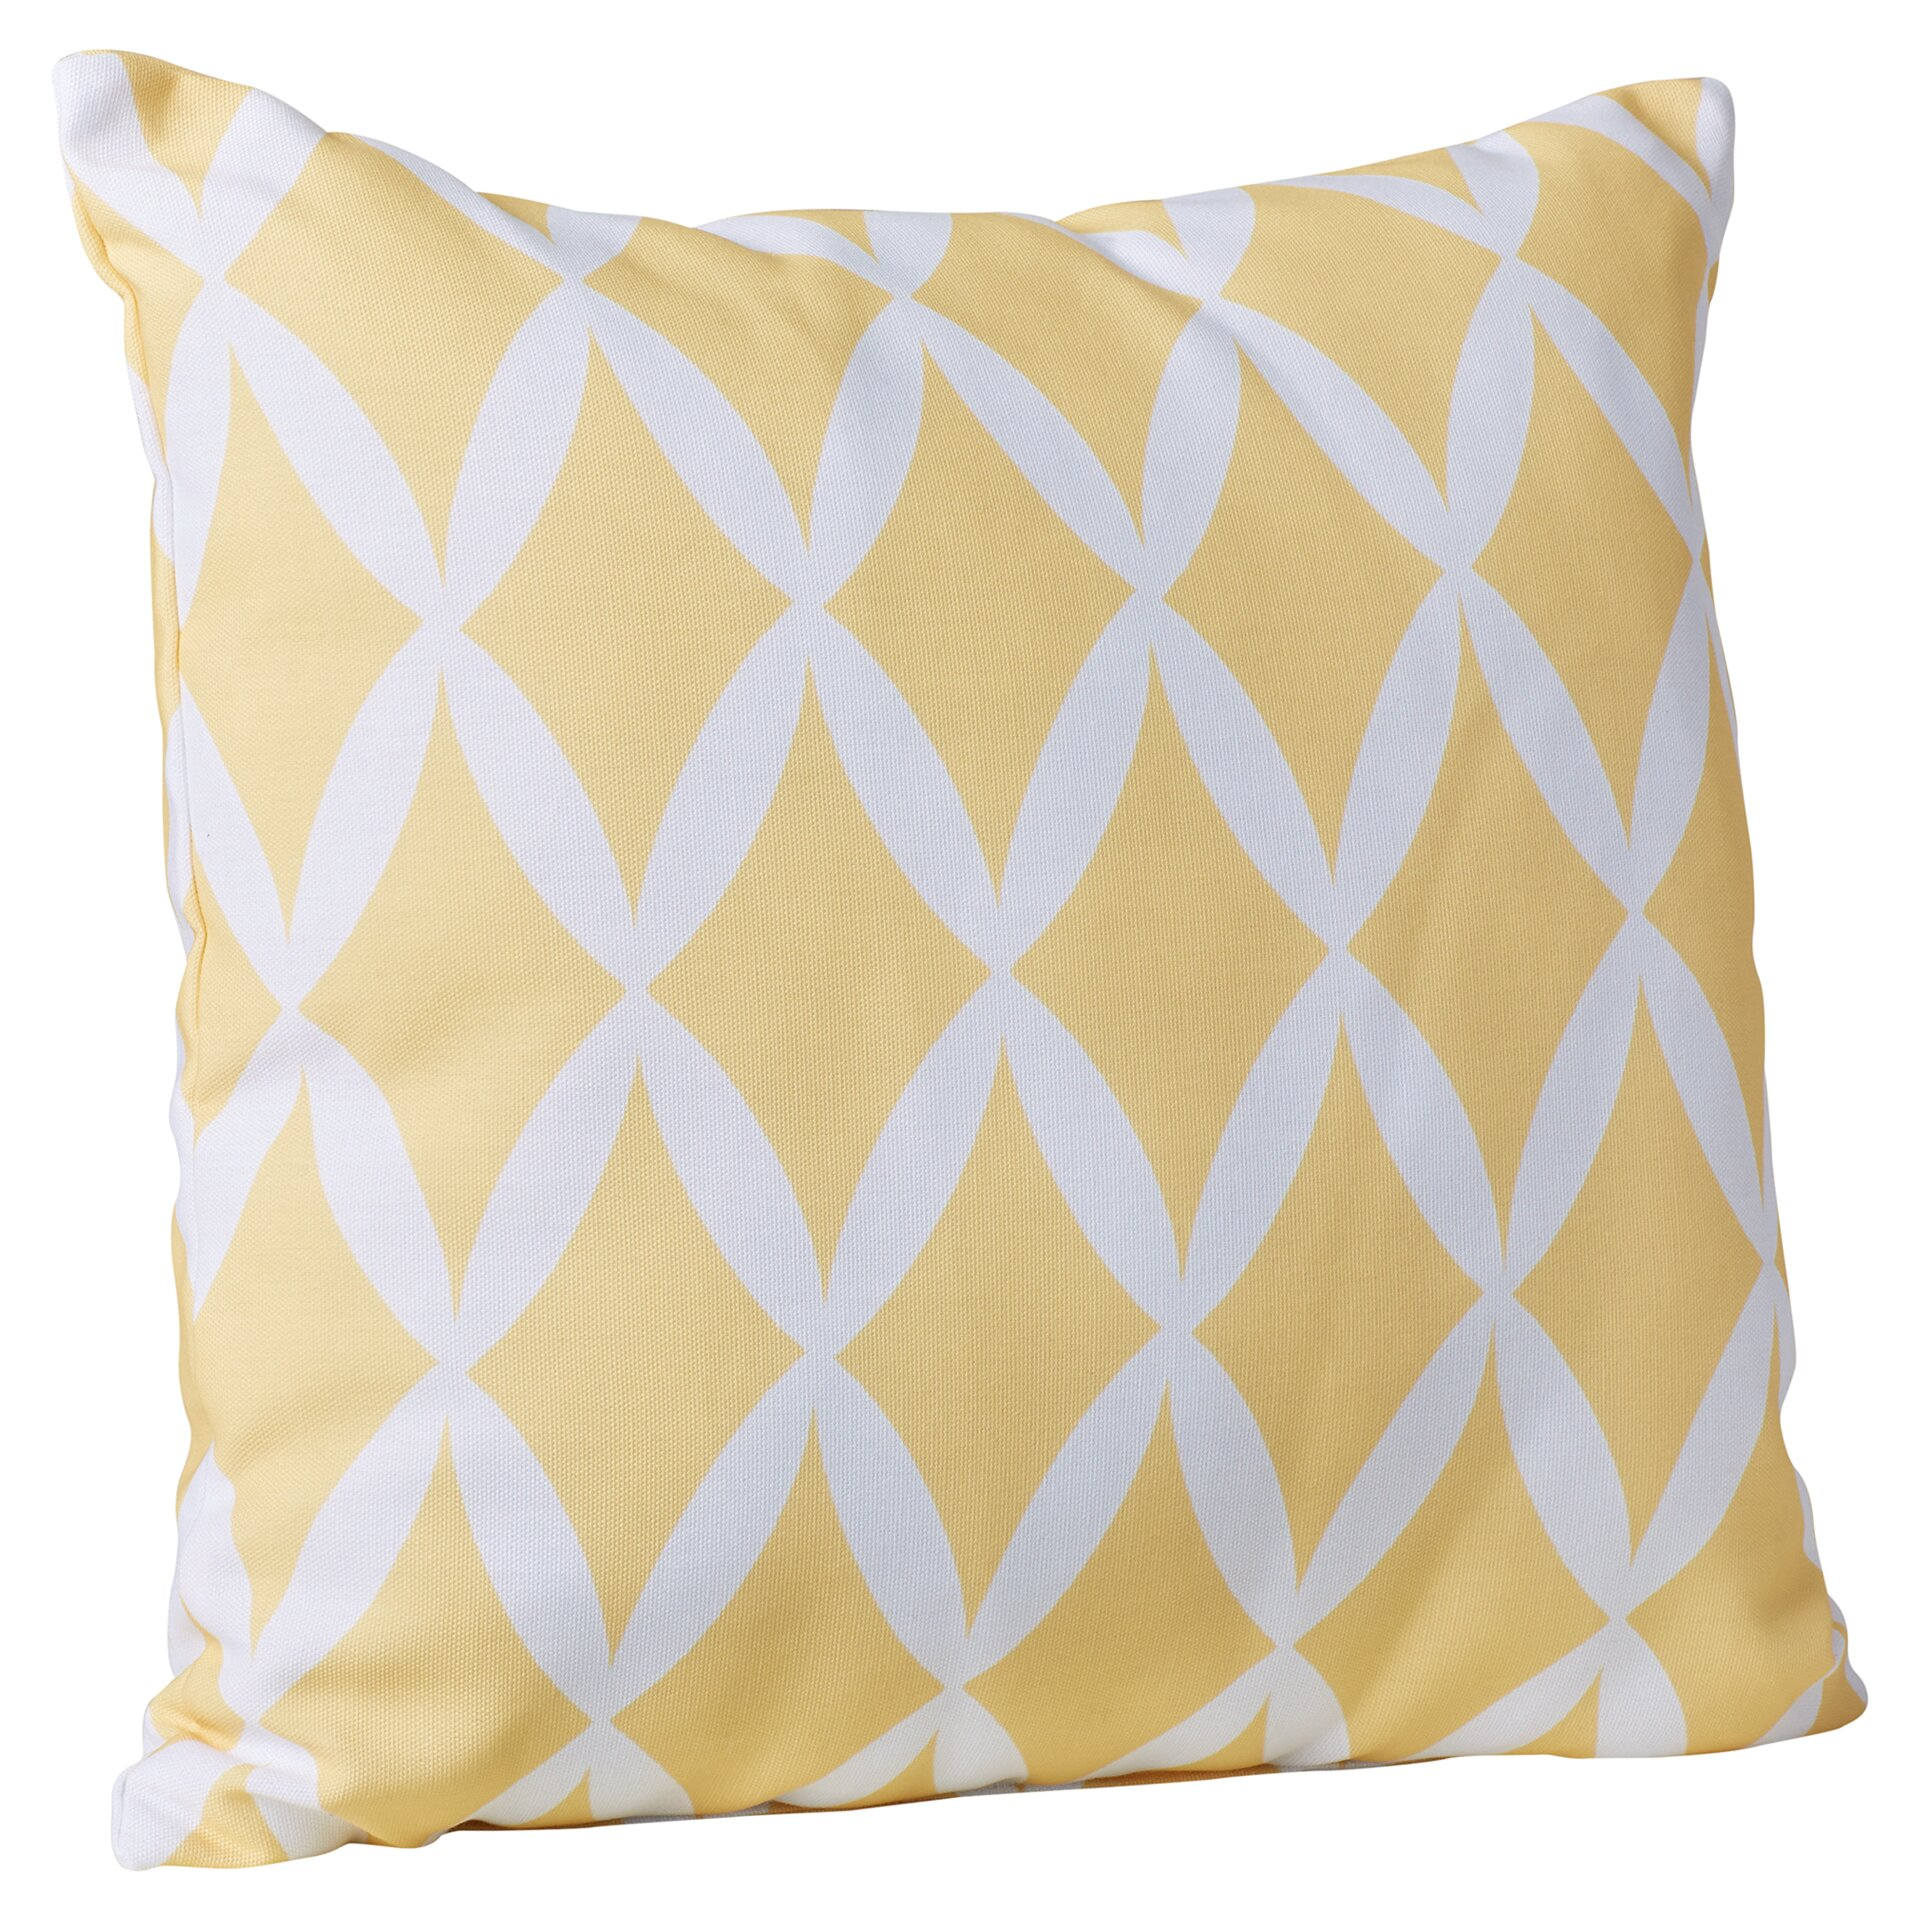 Max Studio Home Decorative Pillows : Max Studio Home Decorative Throw Billingsblessingbags.org